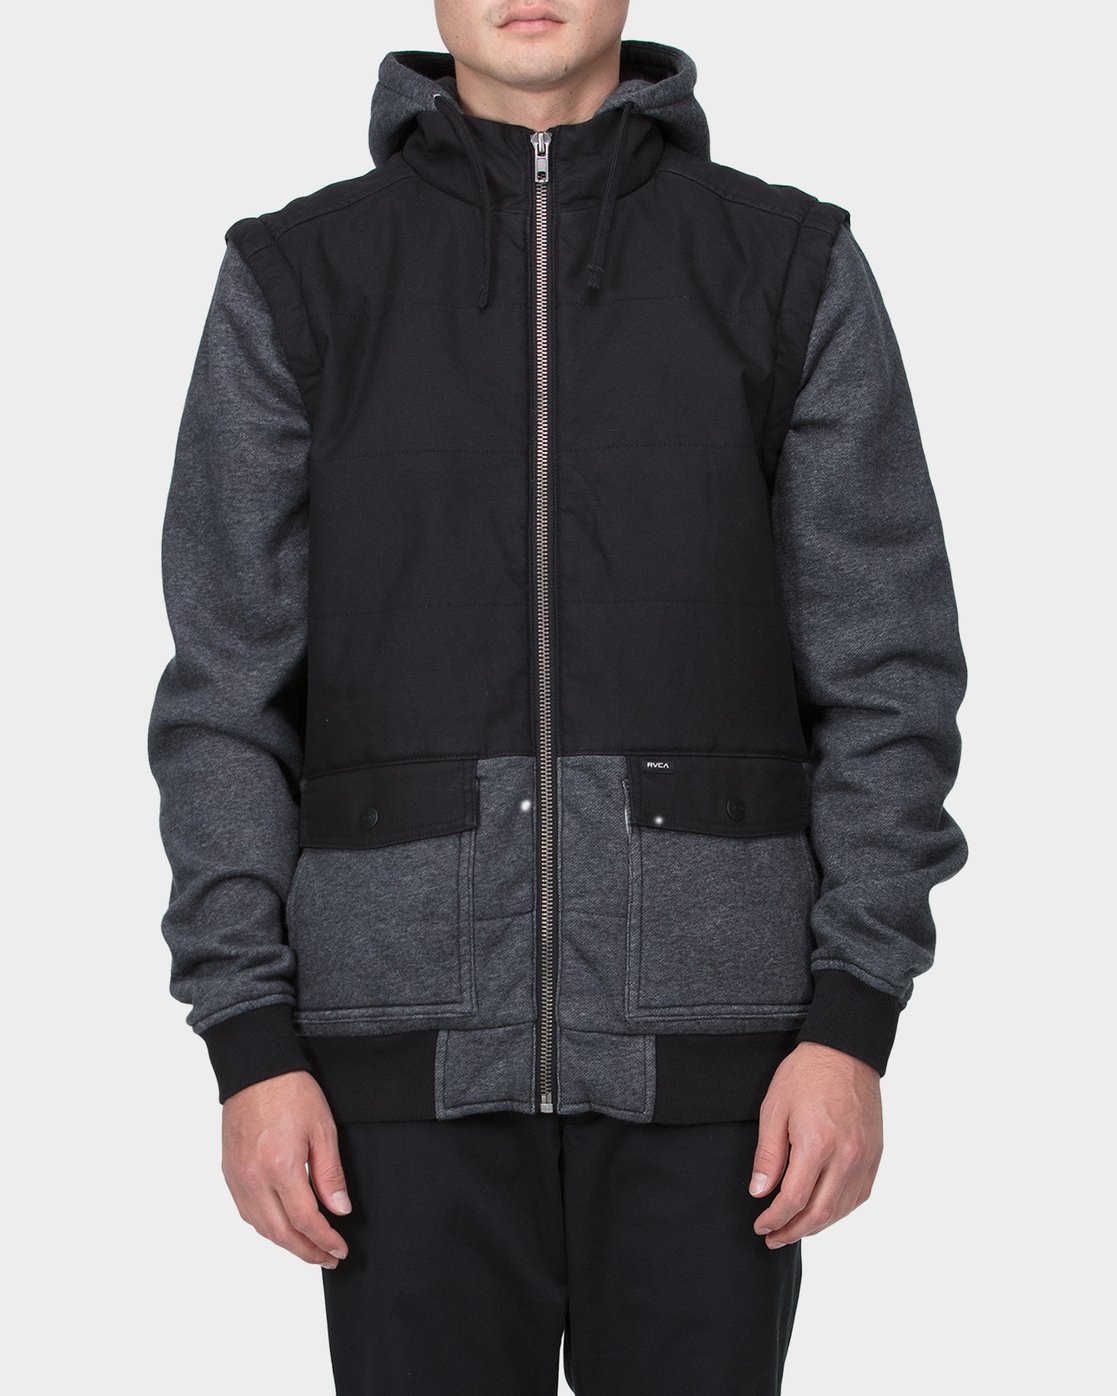 0 RVCA Trust The Puff Jacket  R183436 RVCA